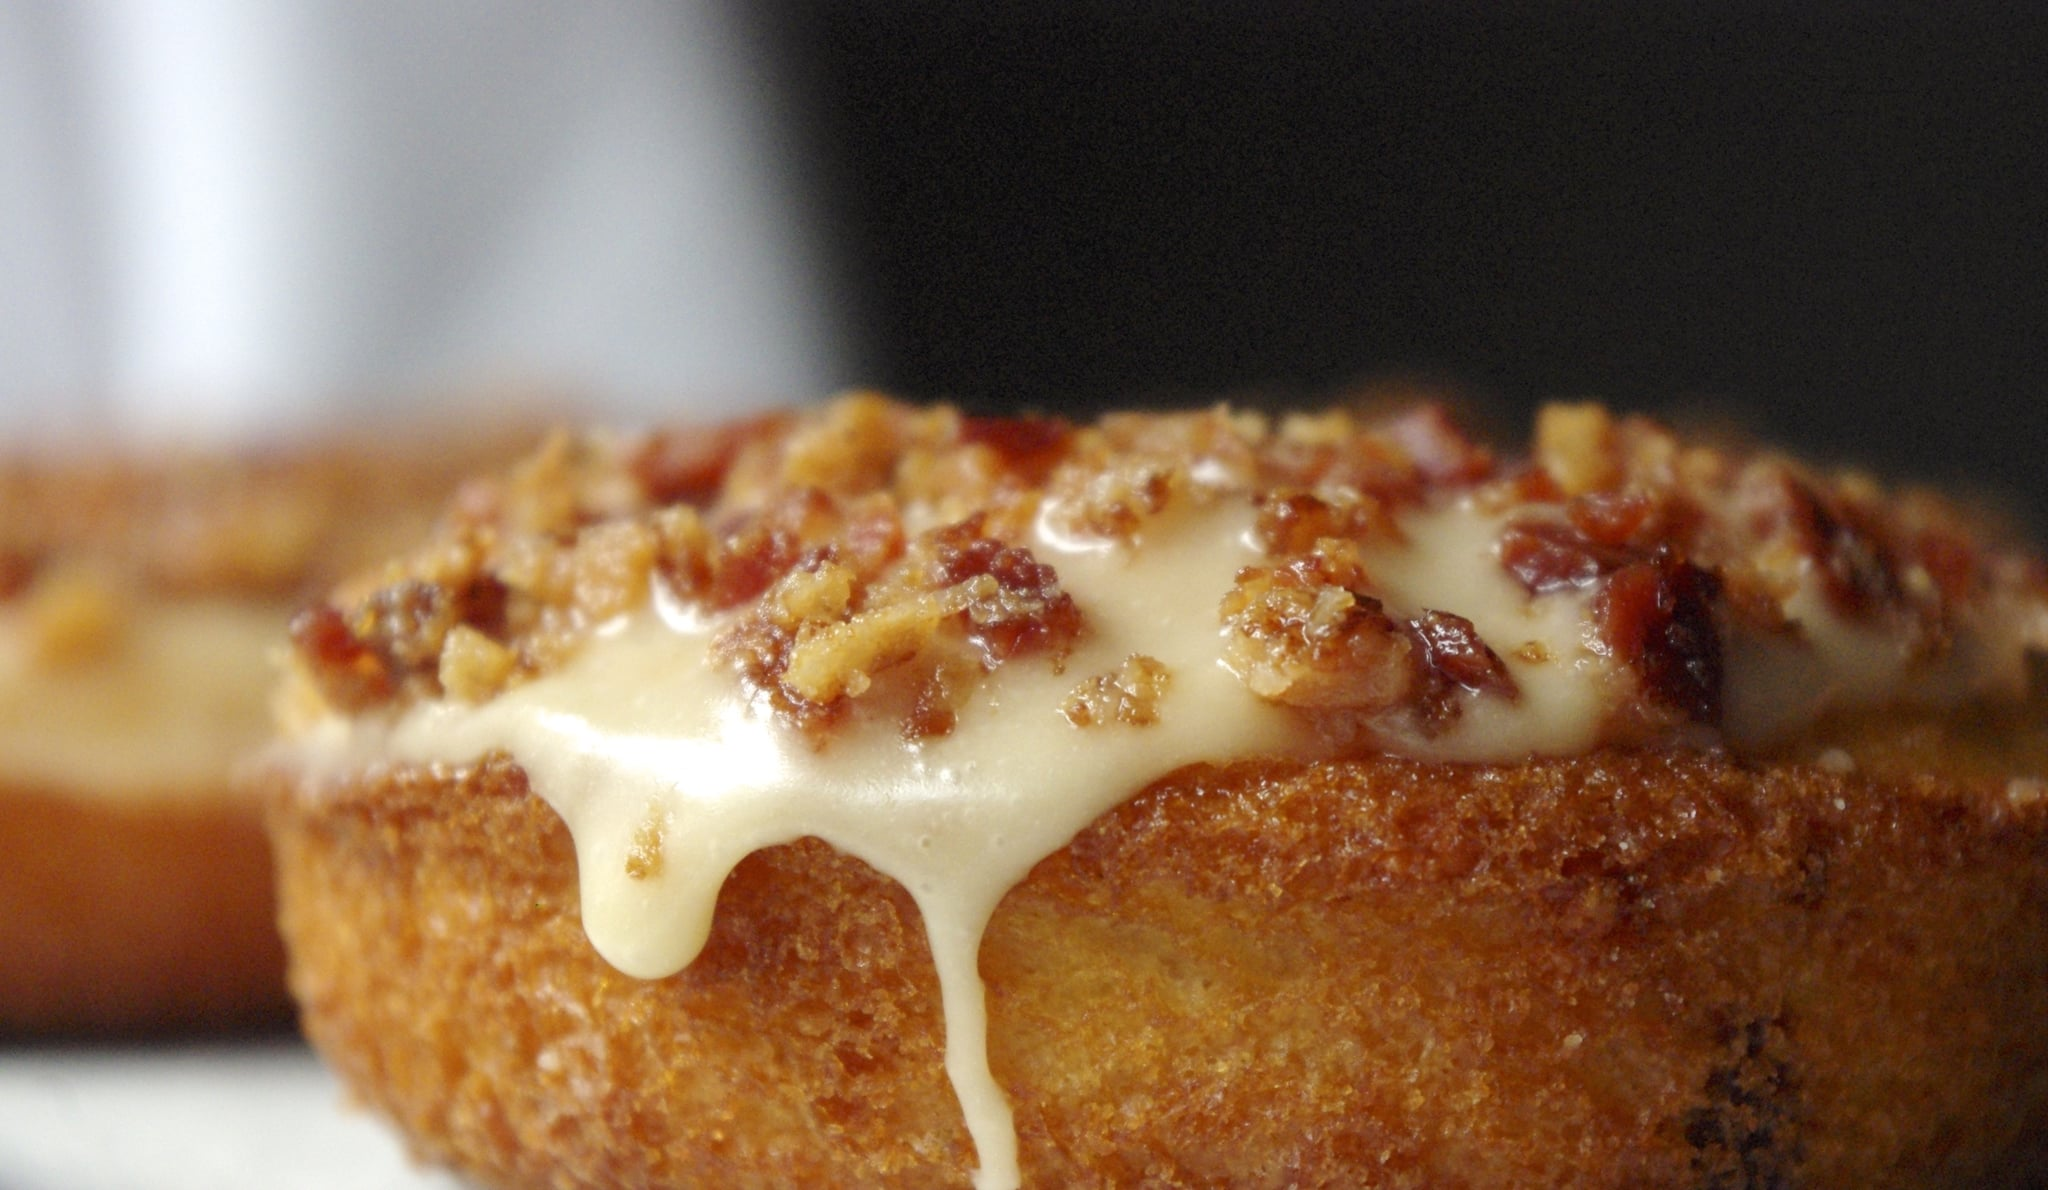 Cheddar Onion Doughnut with Maple Glaze and Bacon